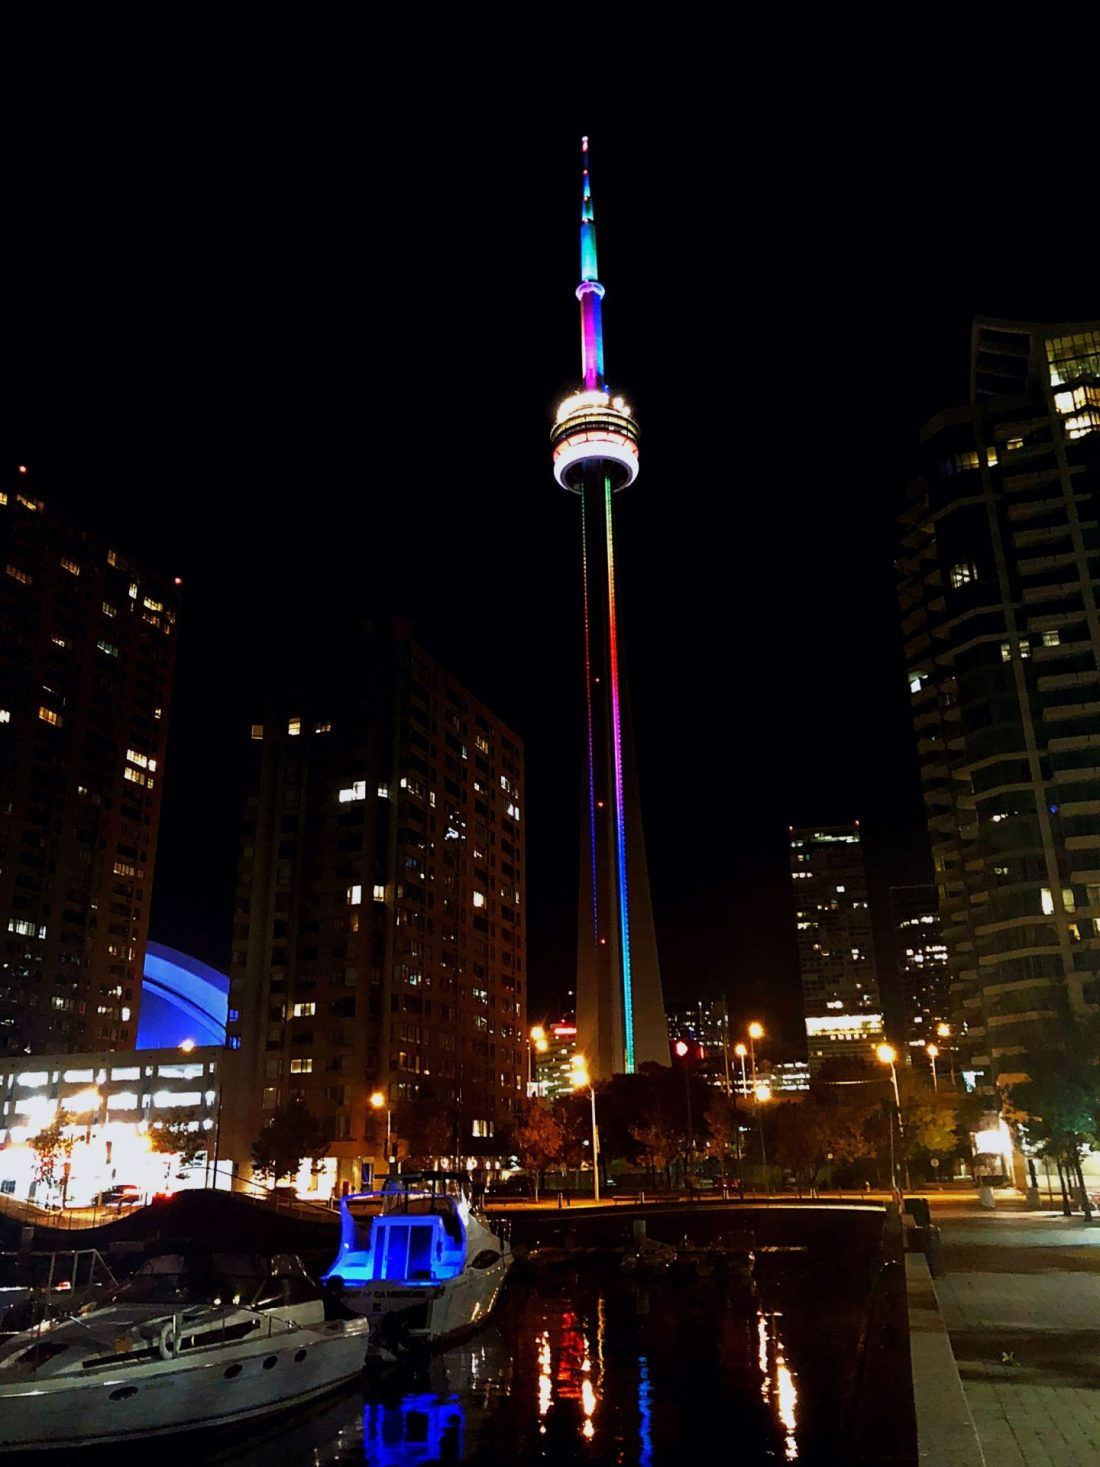 Toronto's CN Tower at night